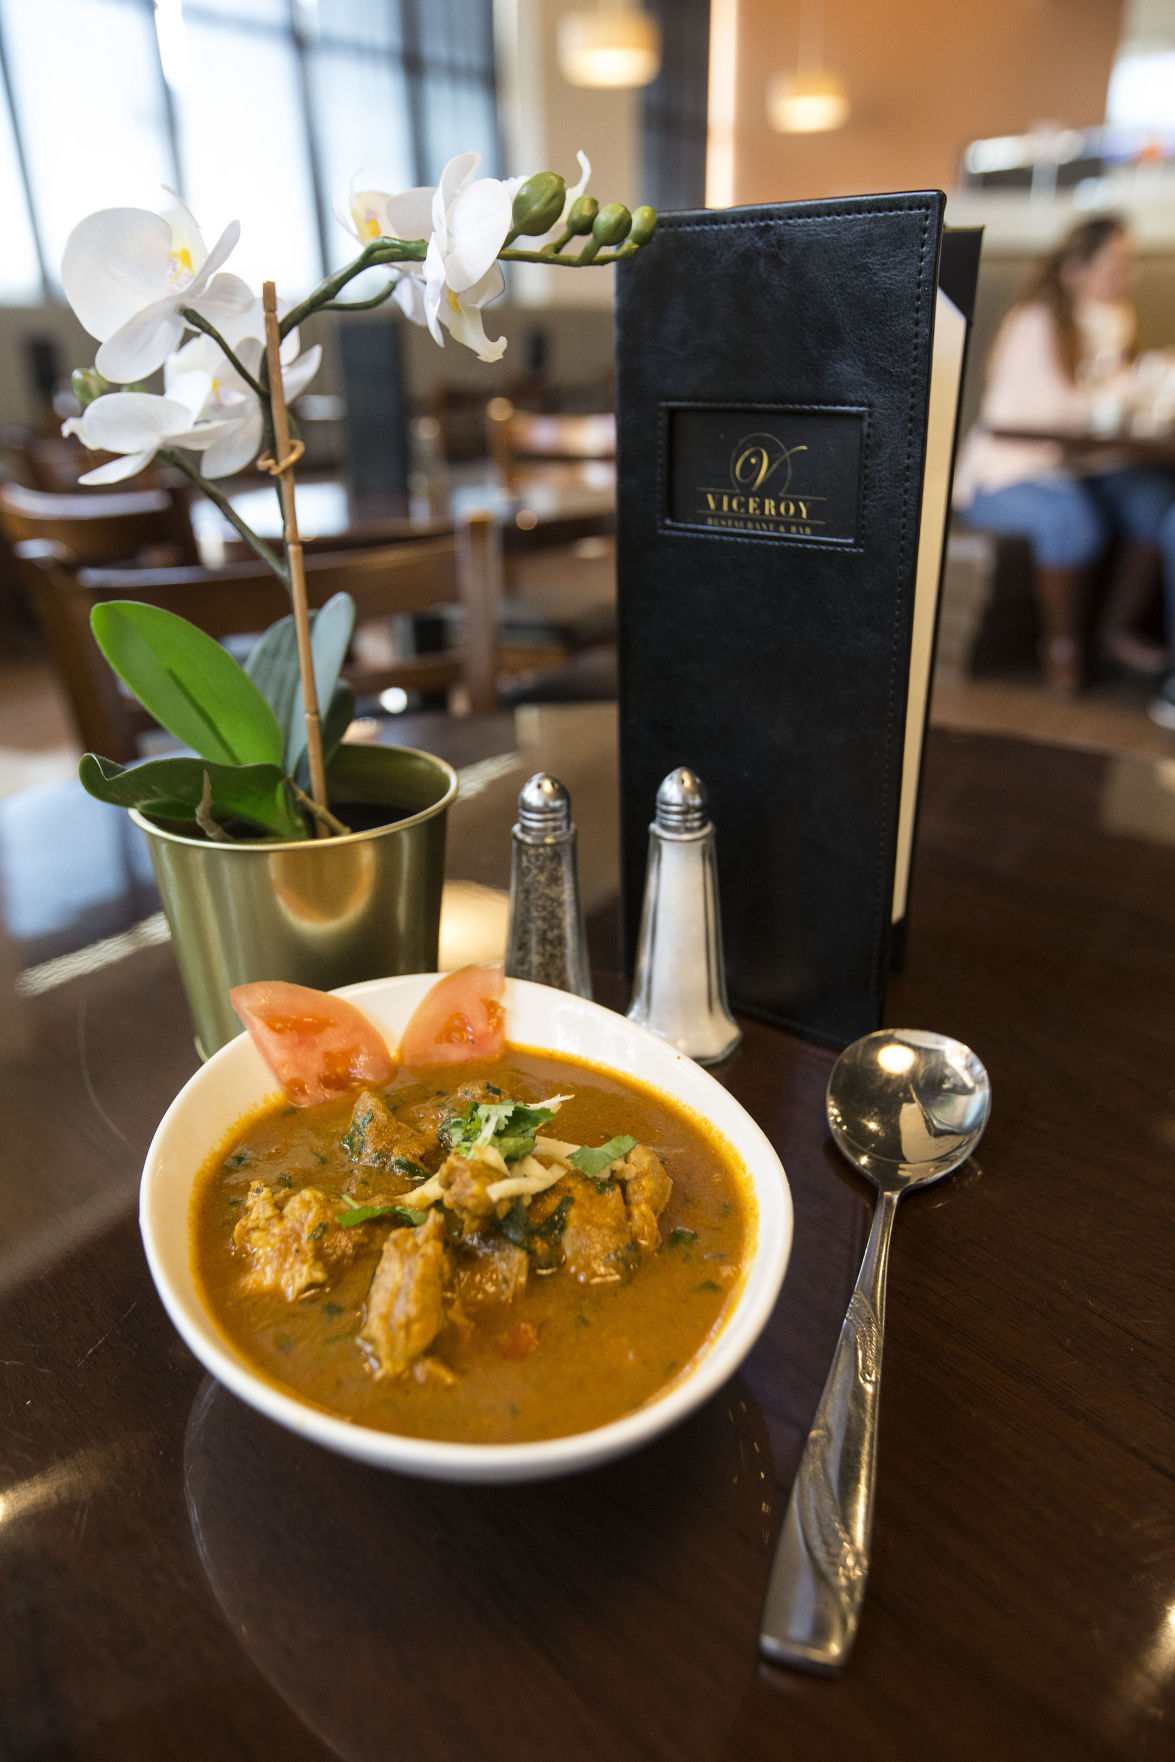 Viceroy curry chicken